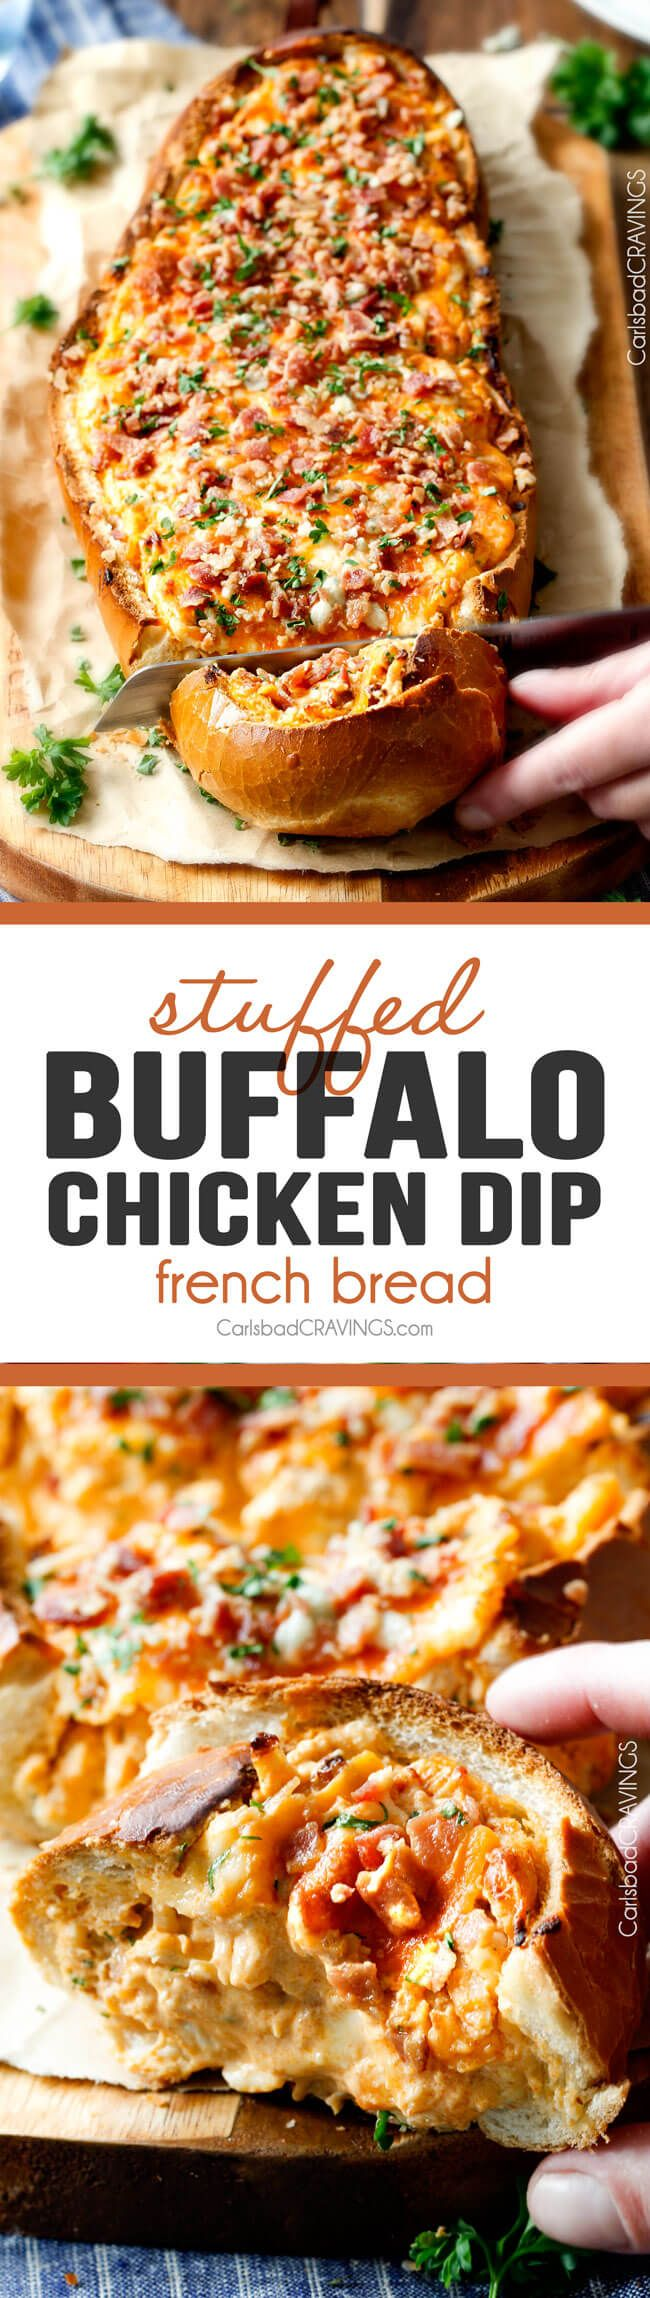 Mega flavorful Buffalo Chicken Dip Stuffed French Bread is your favorite decadent creamy, cheesy dip baked right into the loaf! Crazy delicious side or EASY crowd pleasing appetizer perfect for parties or game day!  My friends always beg me to make this! via @carlsbadcraving